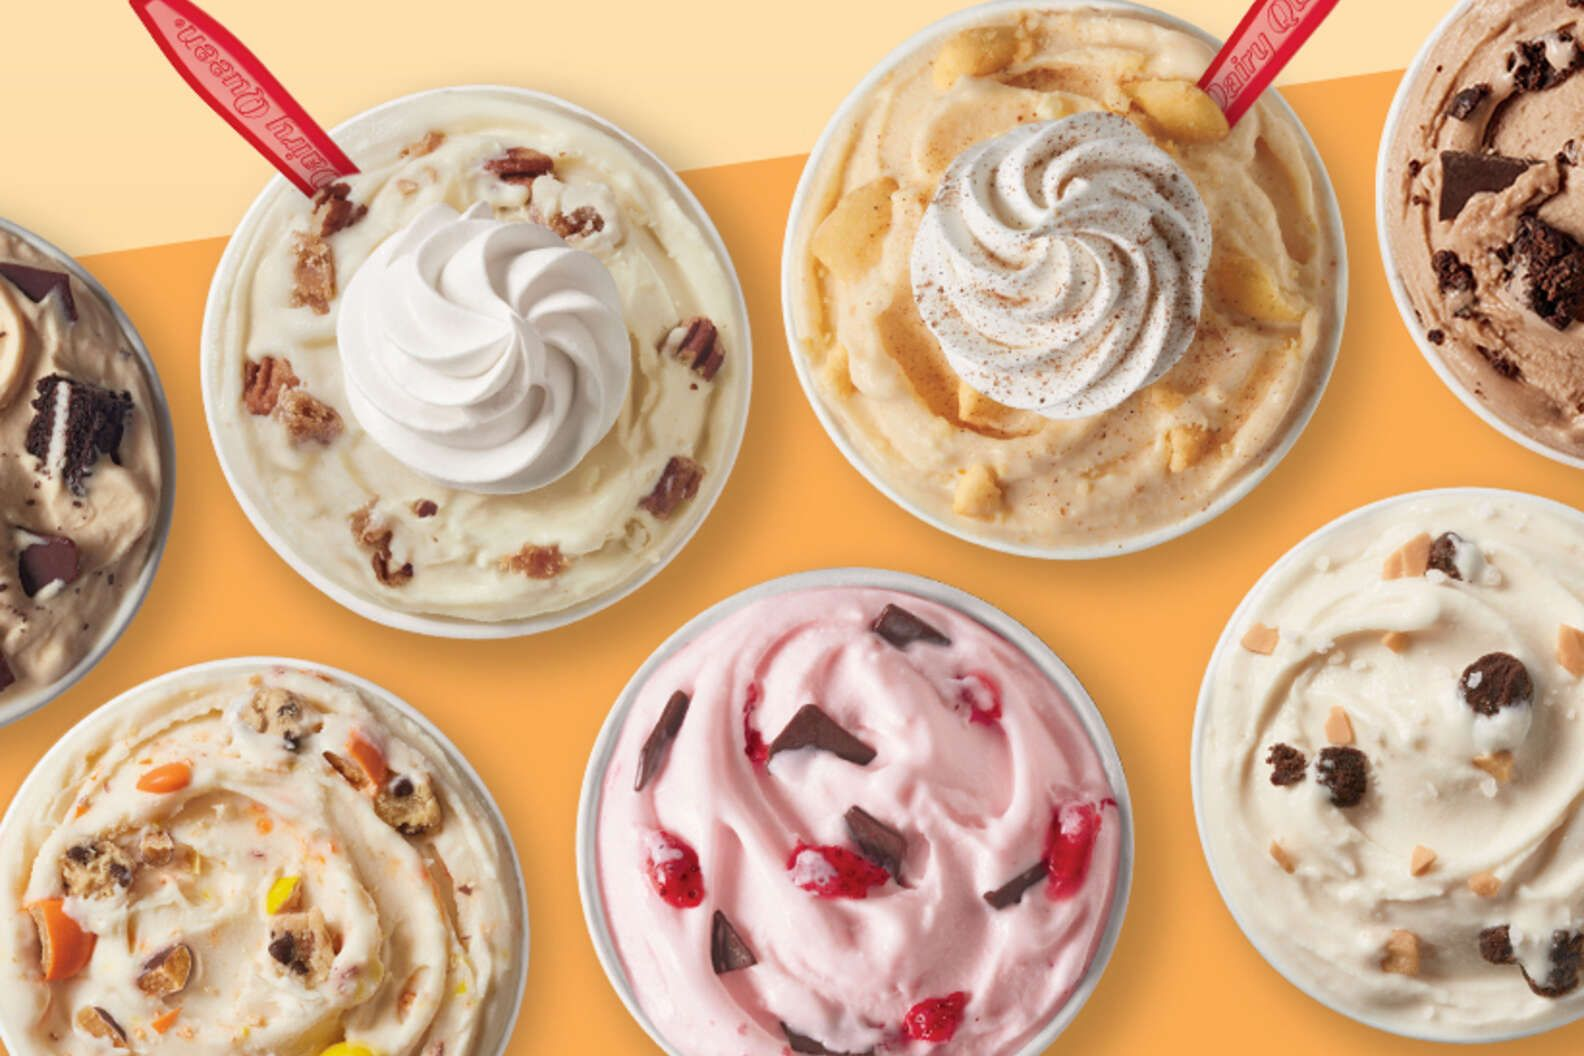 3 Decadent New Blizzards are Now Available at Dairy Queen: Pecan Pie, Sea Salt Toffee Fudge and Reese's Pieces Cookie Dough